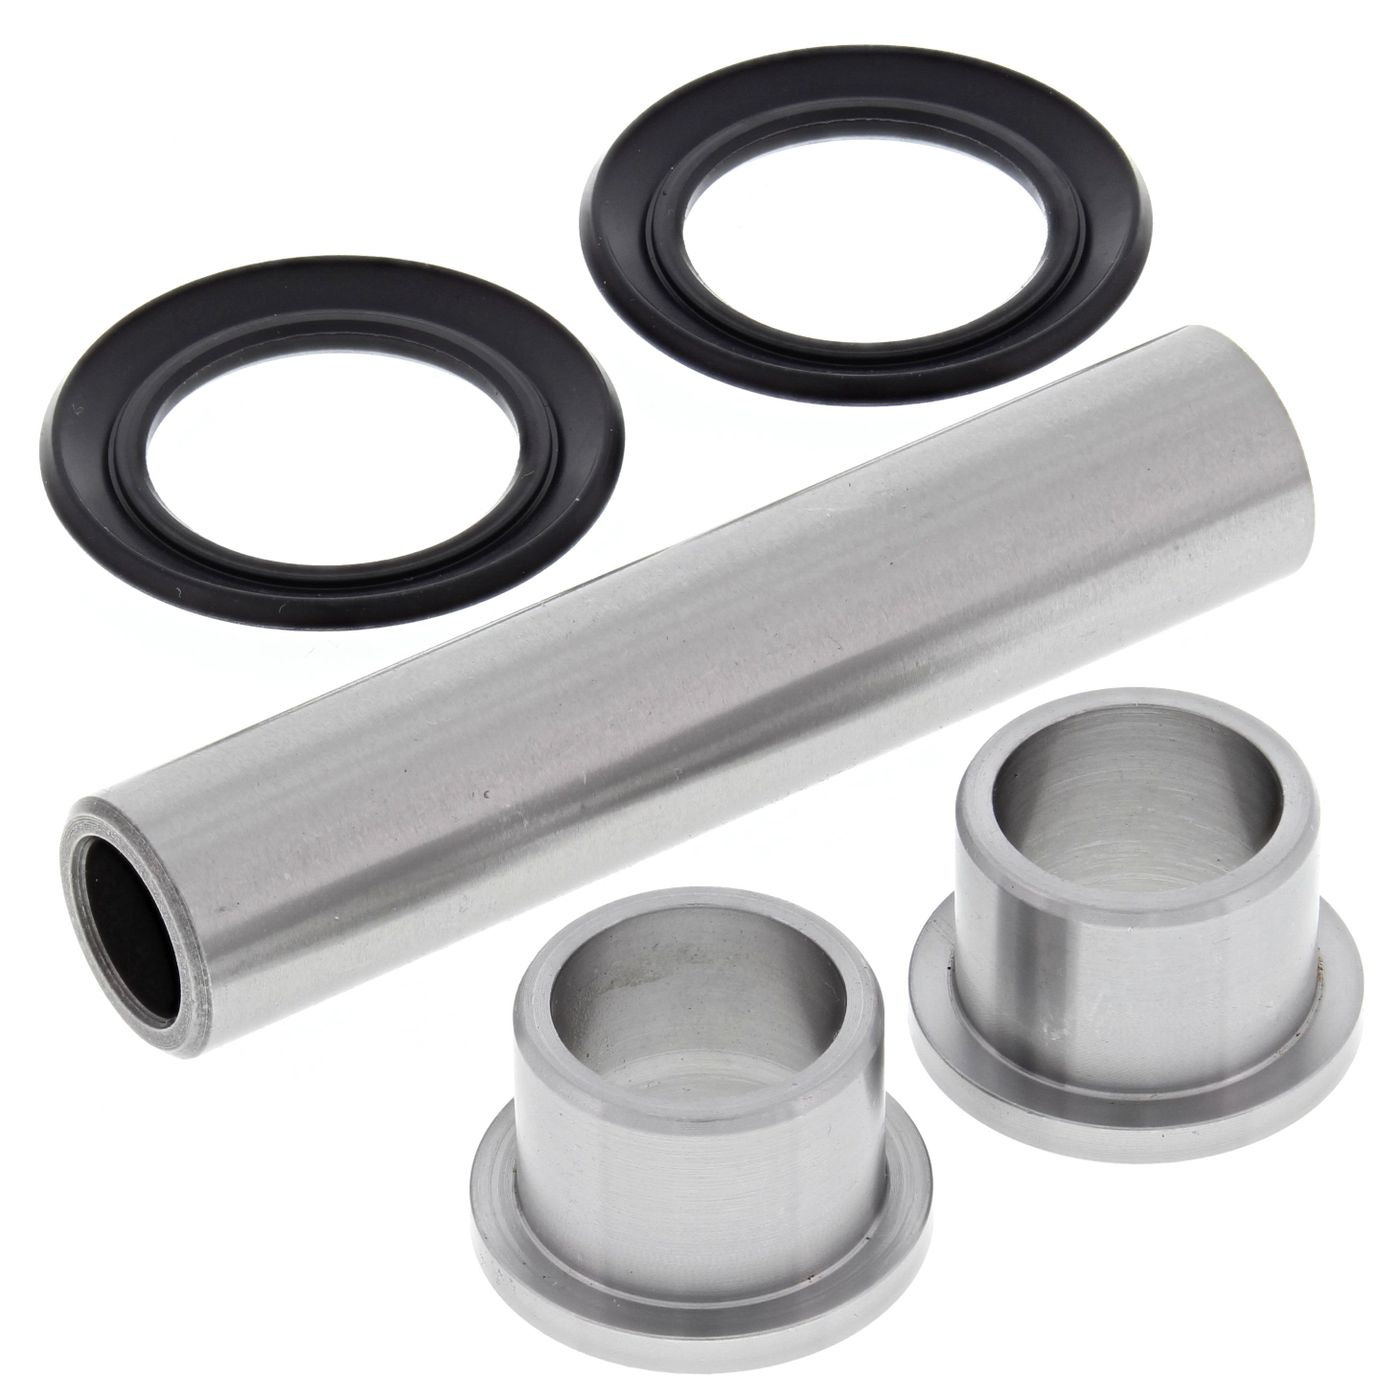 wrp stub axle repair kit - WRP421010 image